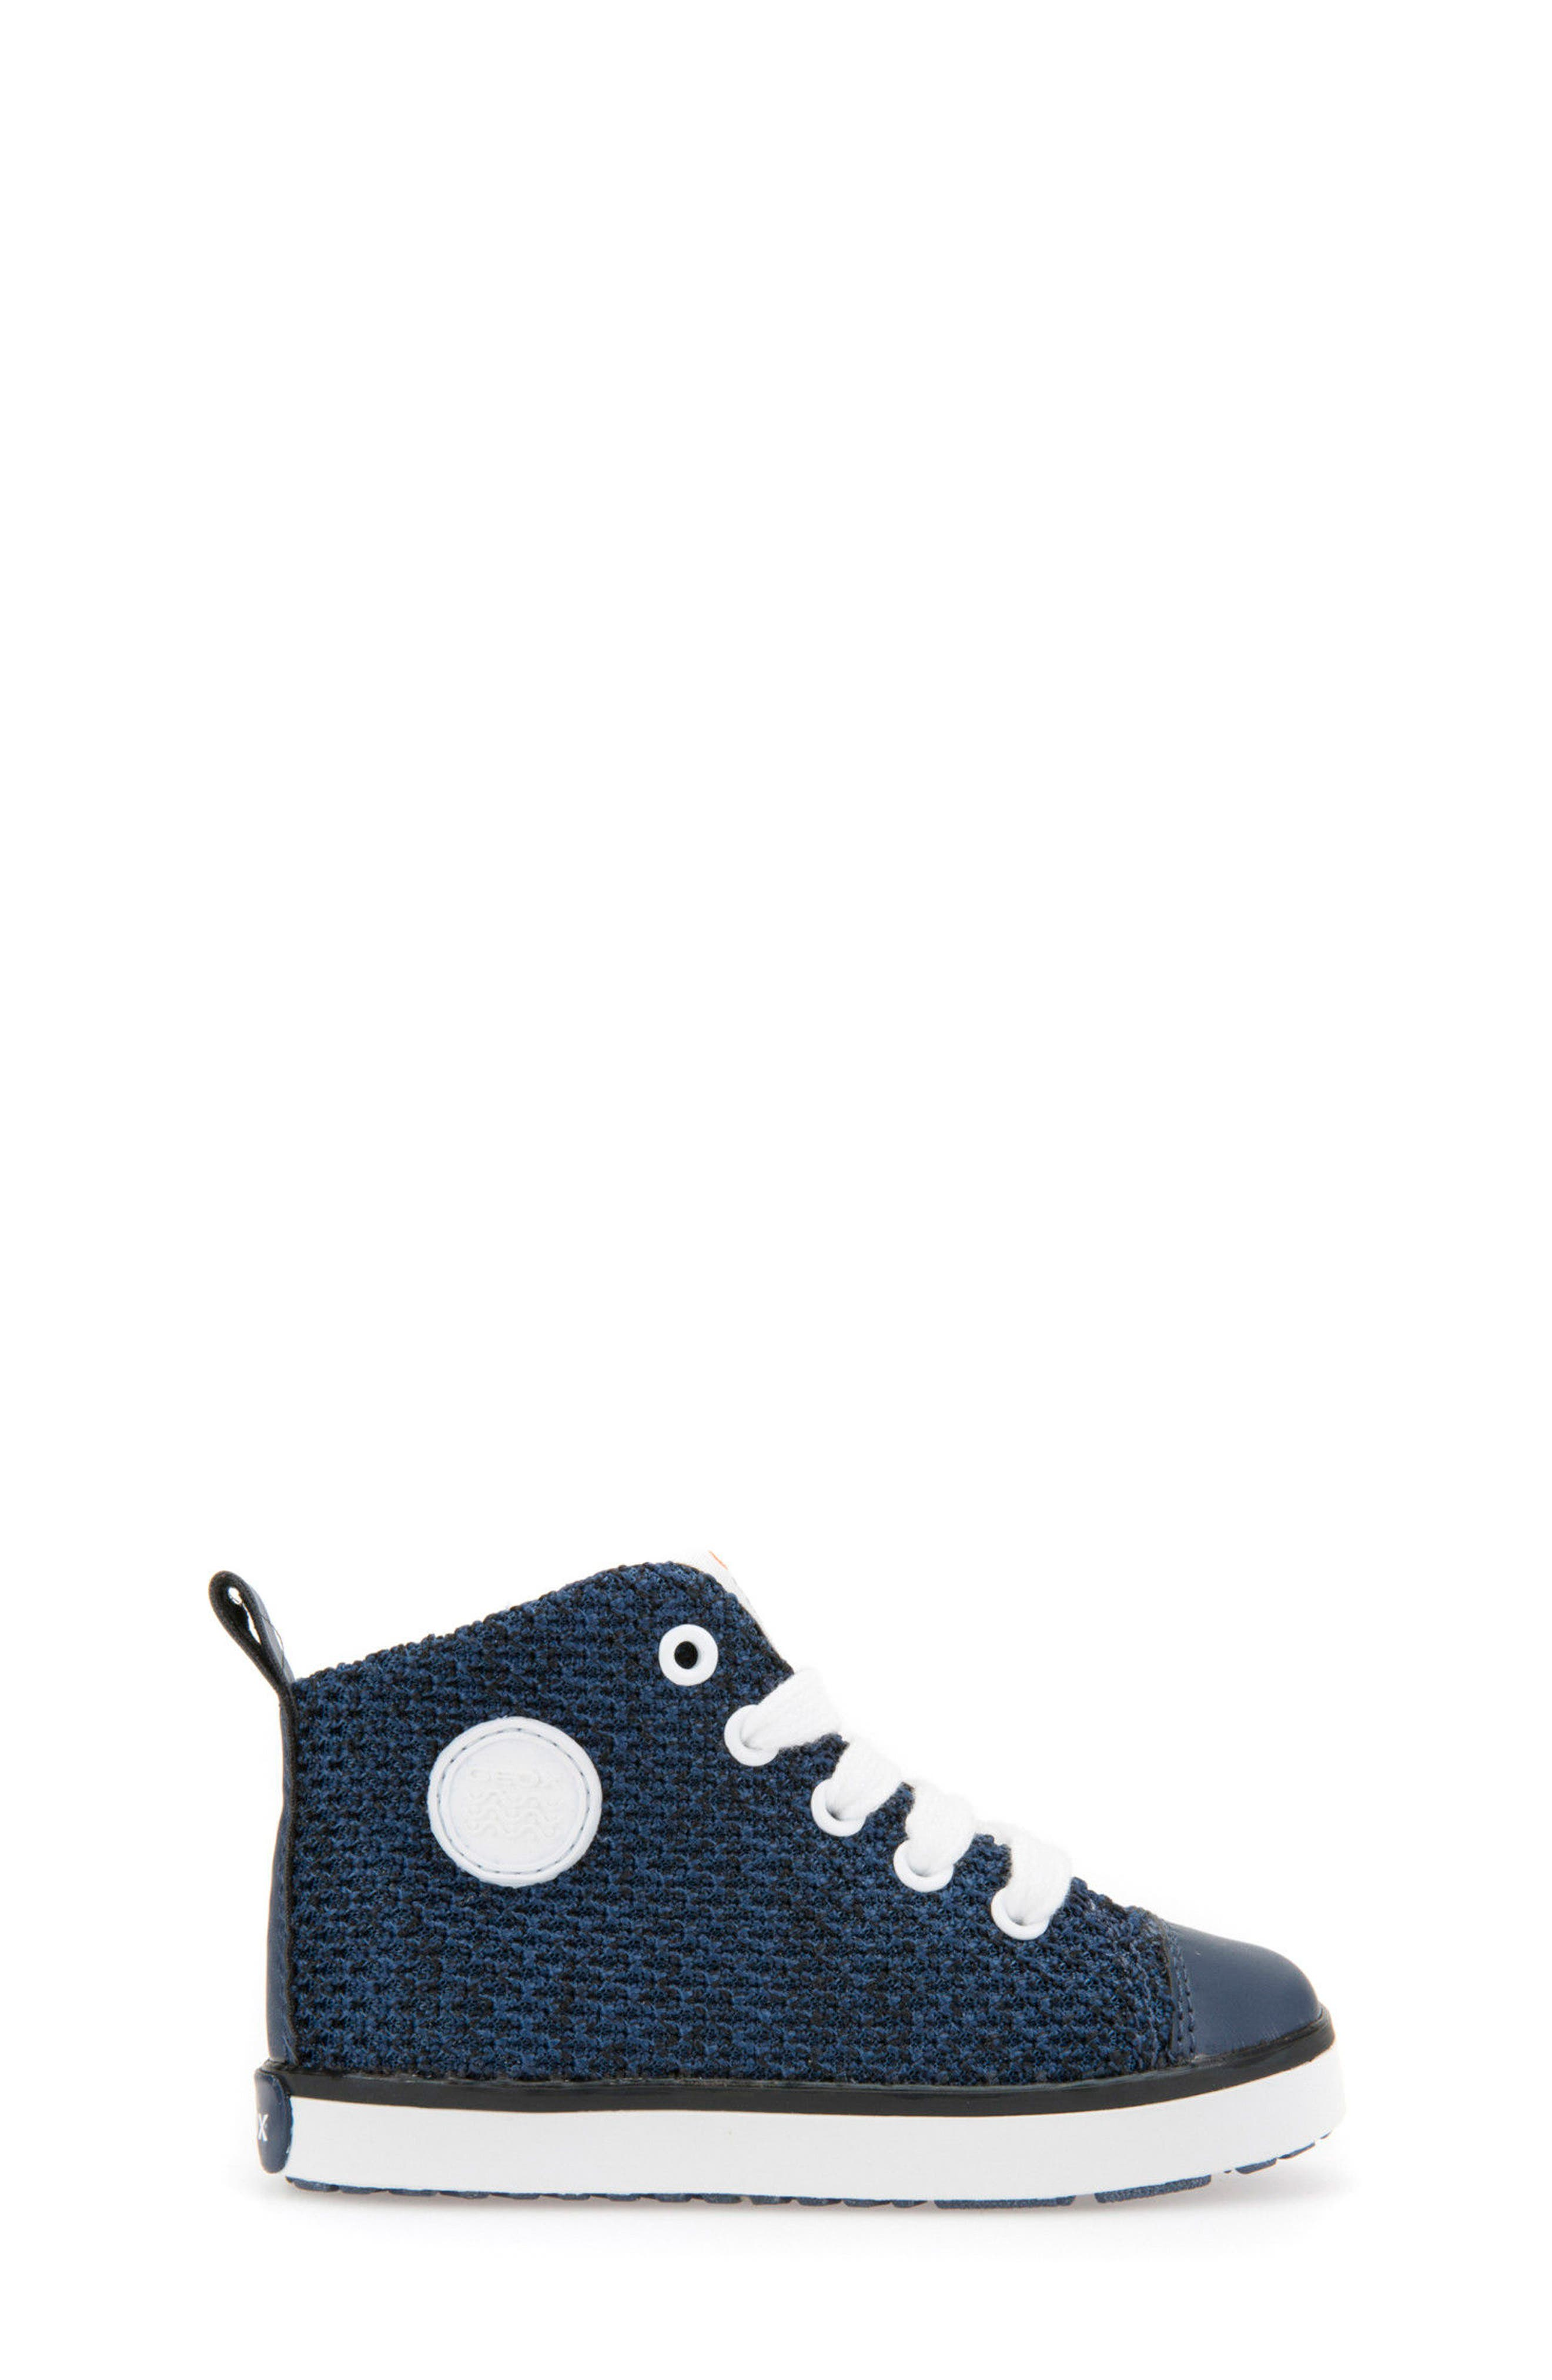 Kilwi Knit High Top Sneaker,                             Alternate thumbnail 3, color,                             Navy